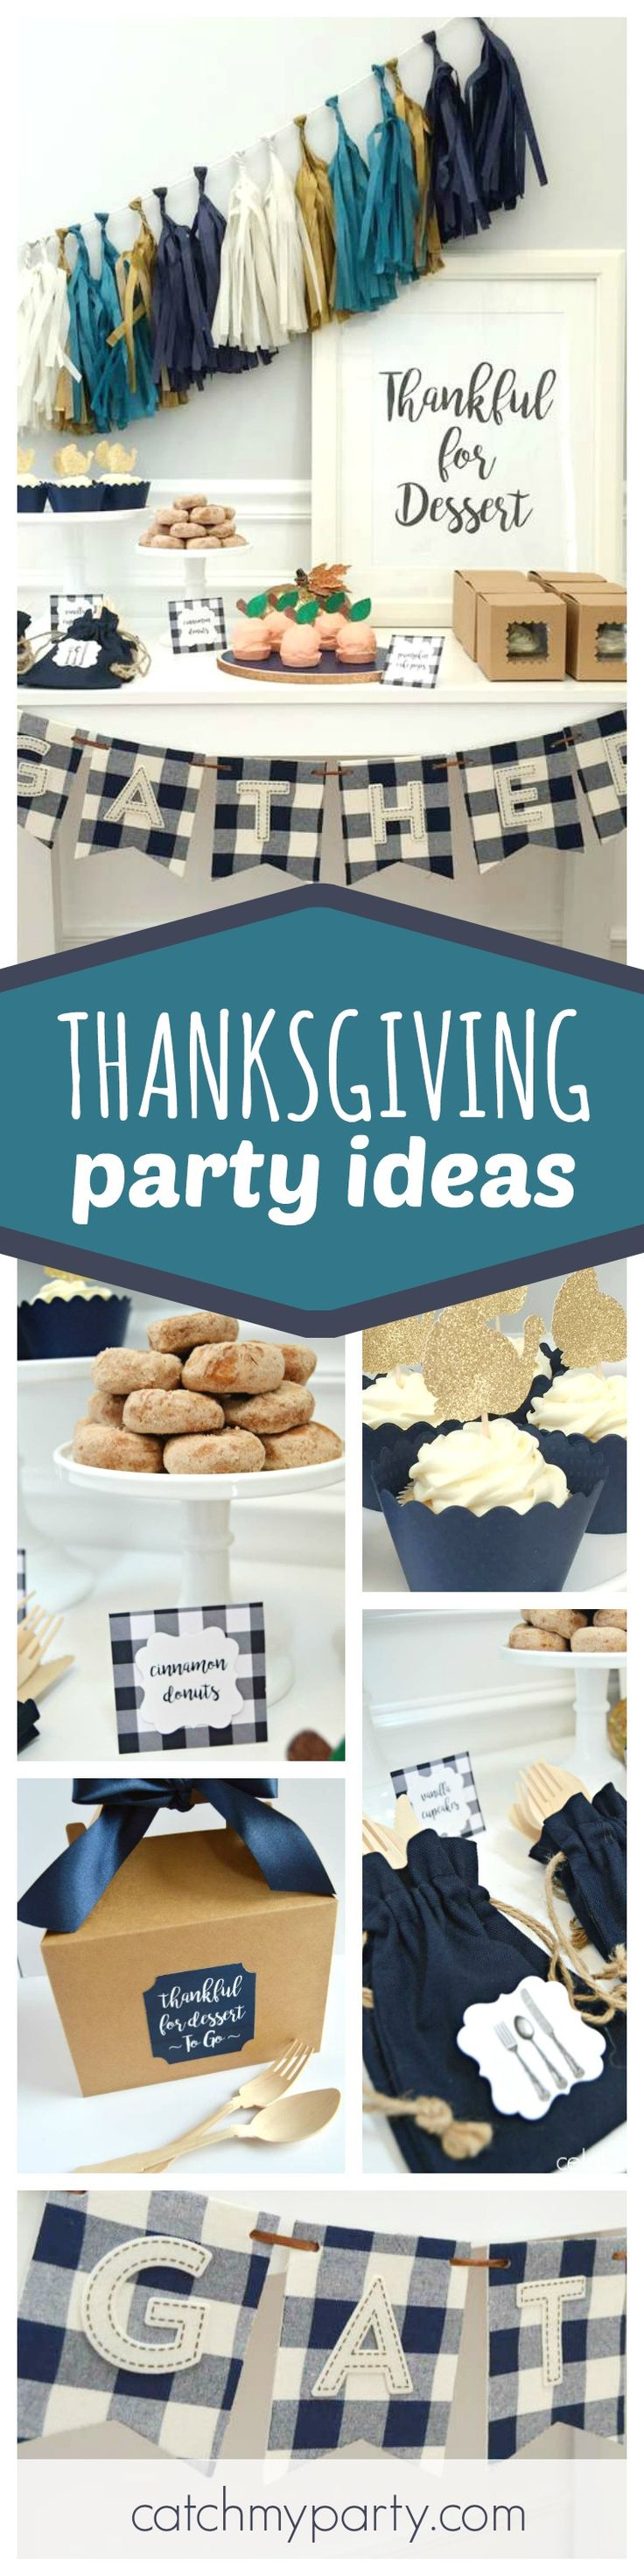 Take a look at this great Thanksgiving dessert table! You're gonna love the sparkly turkey toppers! See more party ideas and share yours at CatchMyParty.com